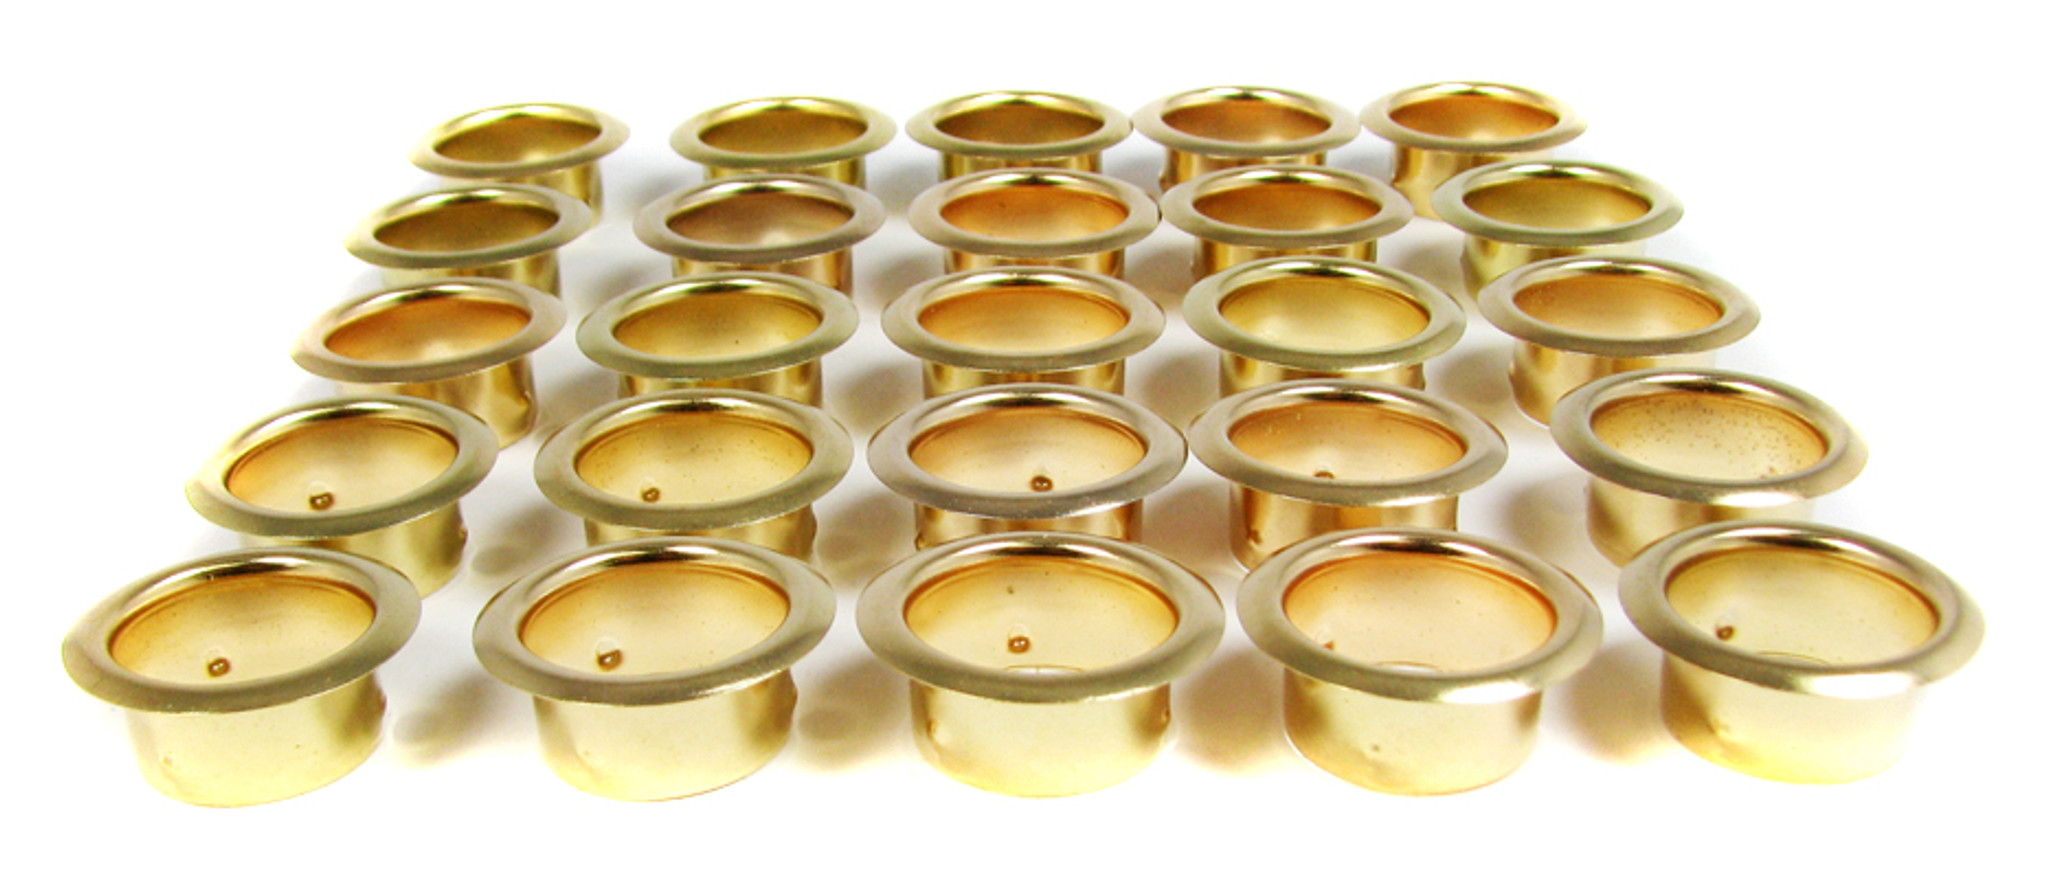 25 Pack 7 8 Inch Brass Grommets Candle Cups C B Gitty